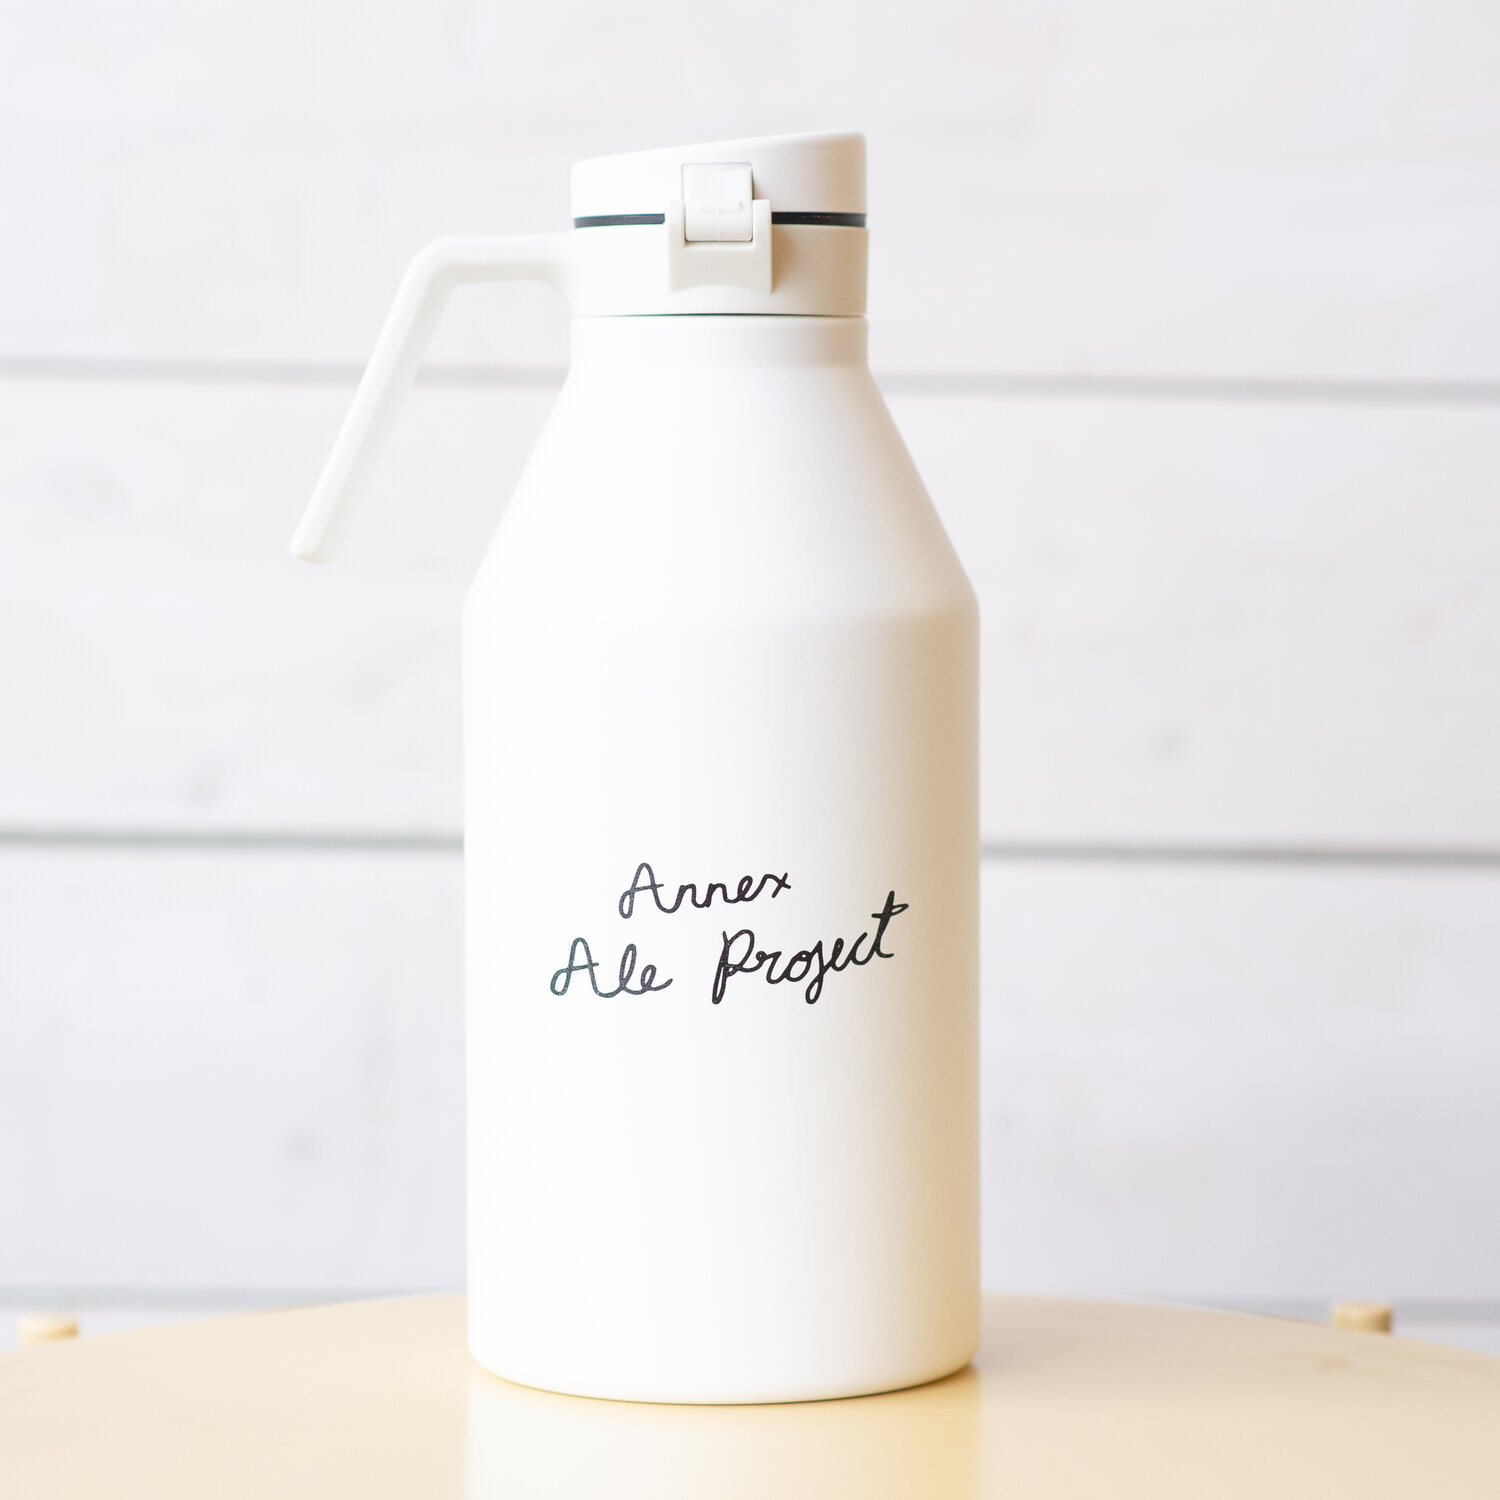 64oz MiiR Insulated Growler  Annex Ale Project